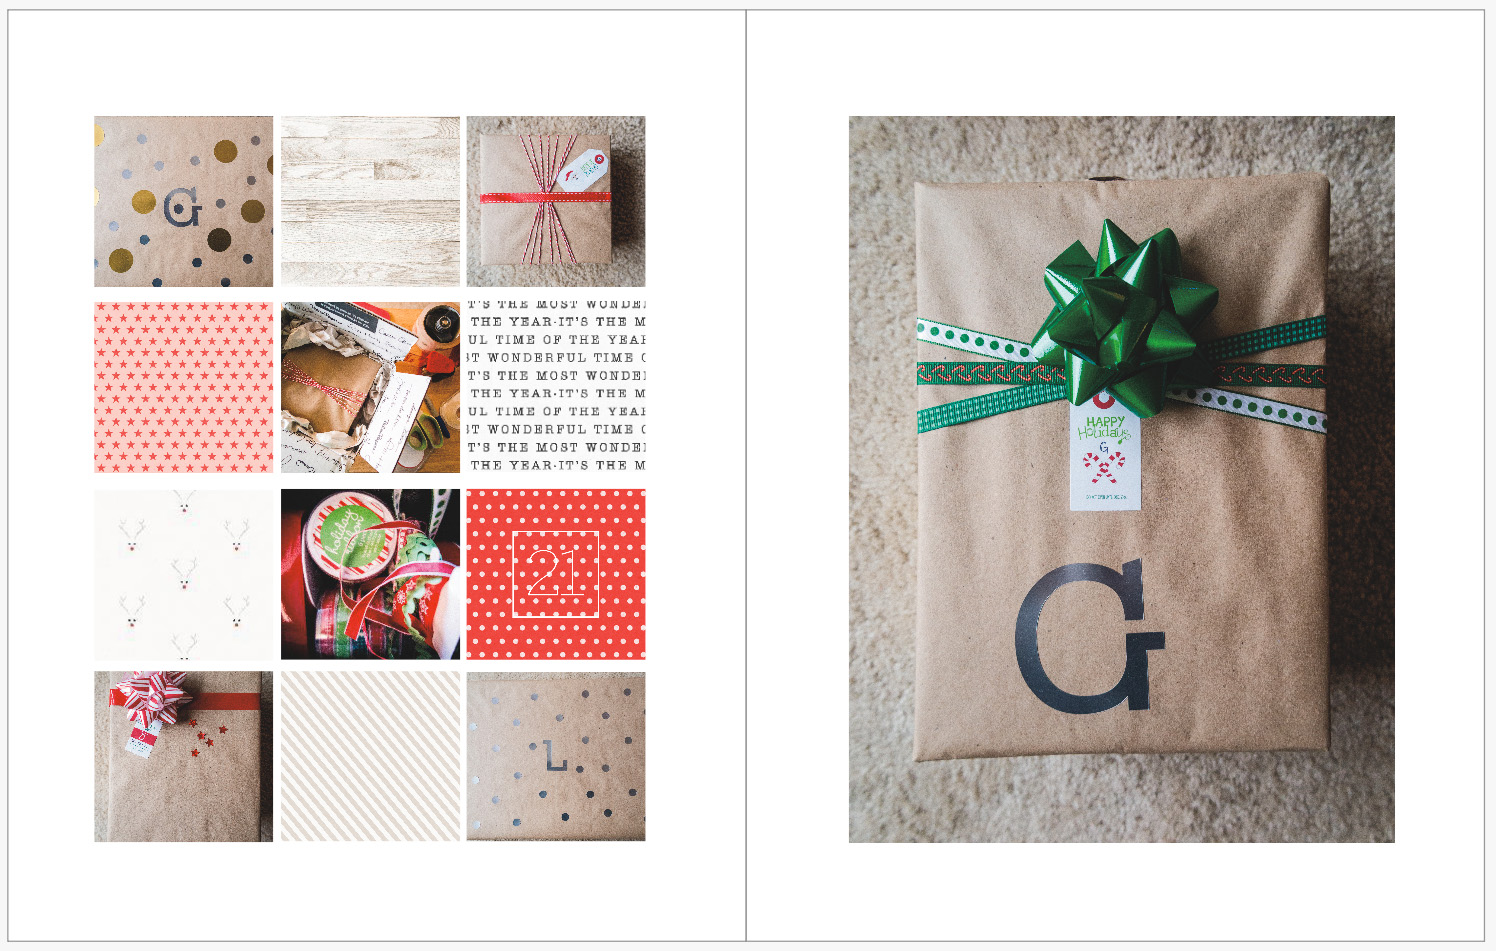 December Daily 2014 photo book | gift wrapping | yolandamadethis.com